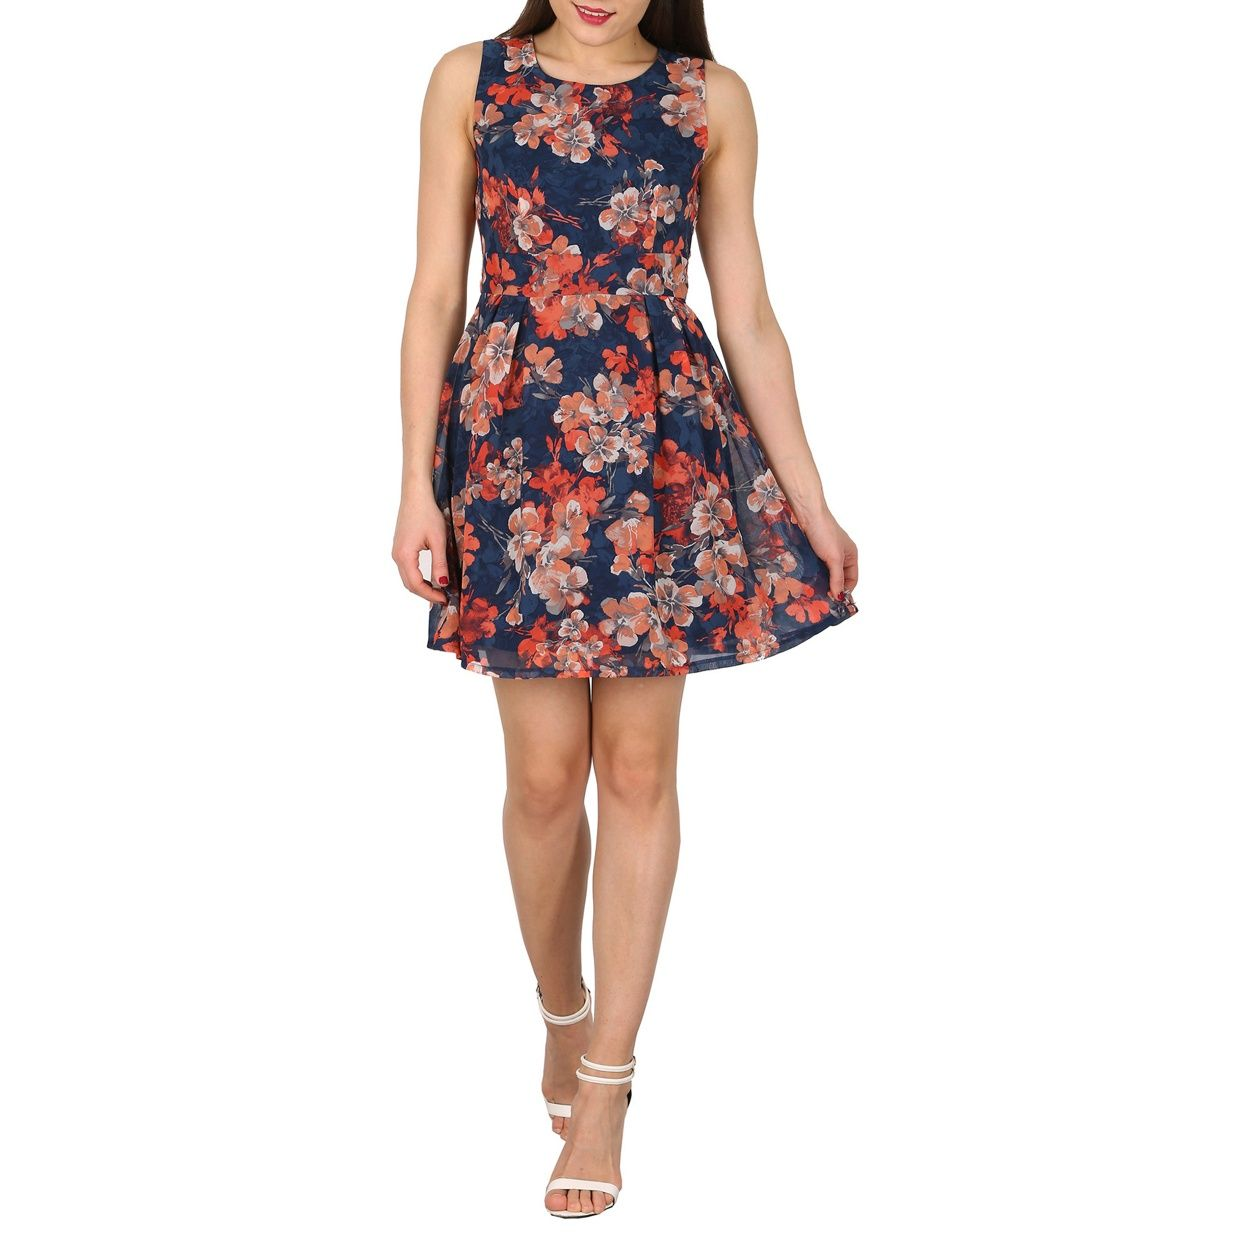 Apricot Navy floral tie back dress